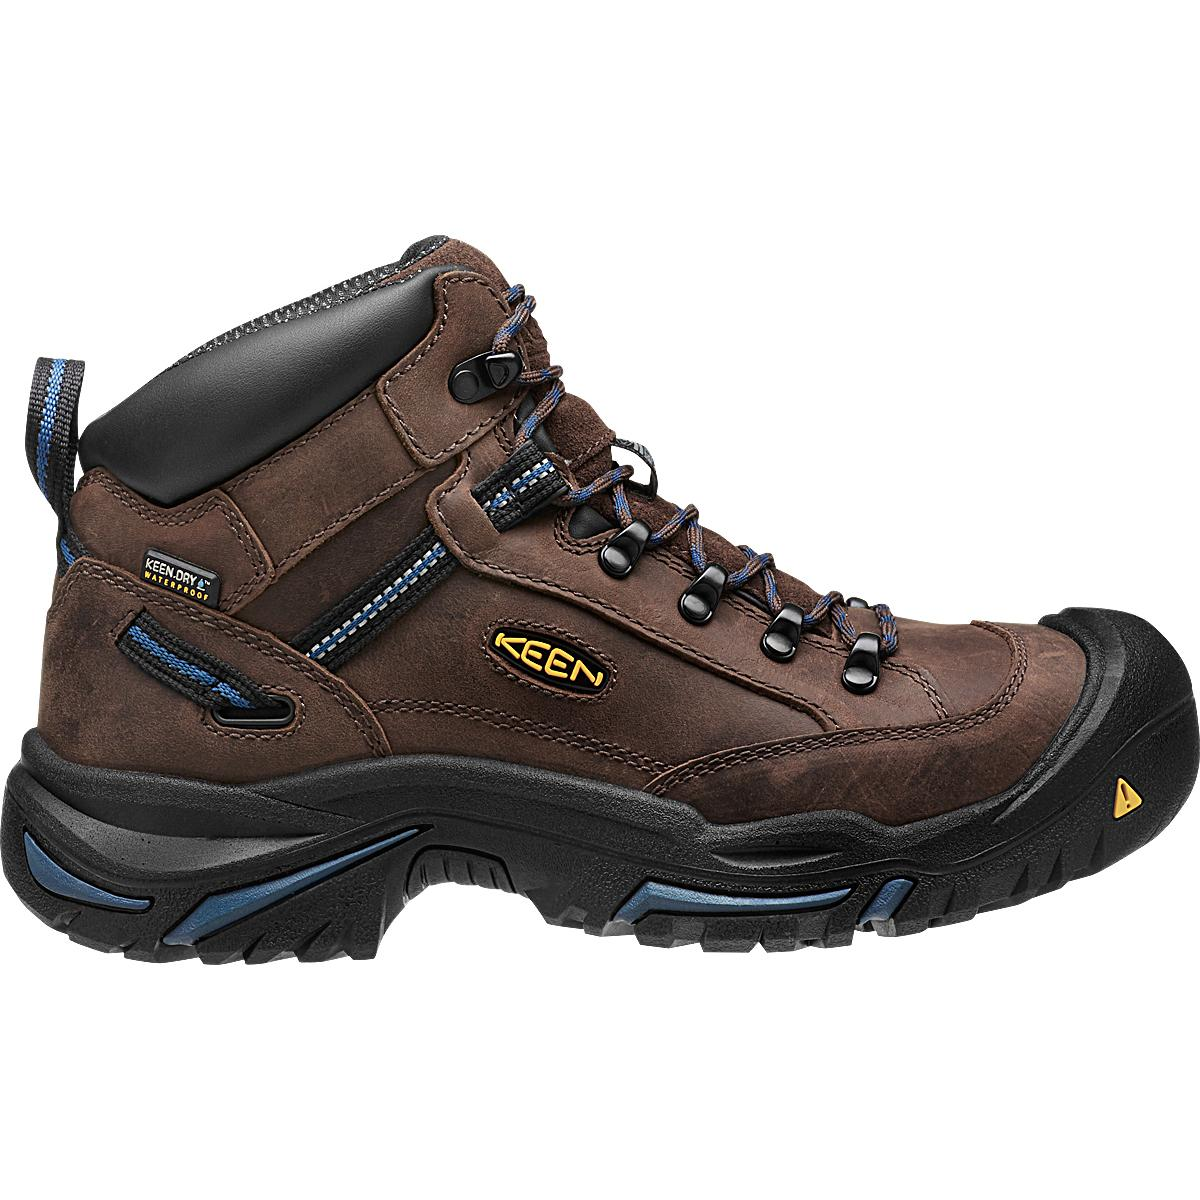 Keen Braddock Steel Toe Waterproof Hiker, K1012771